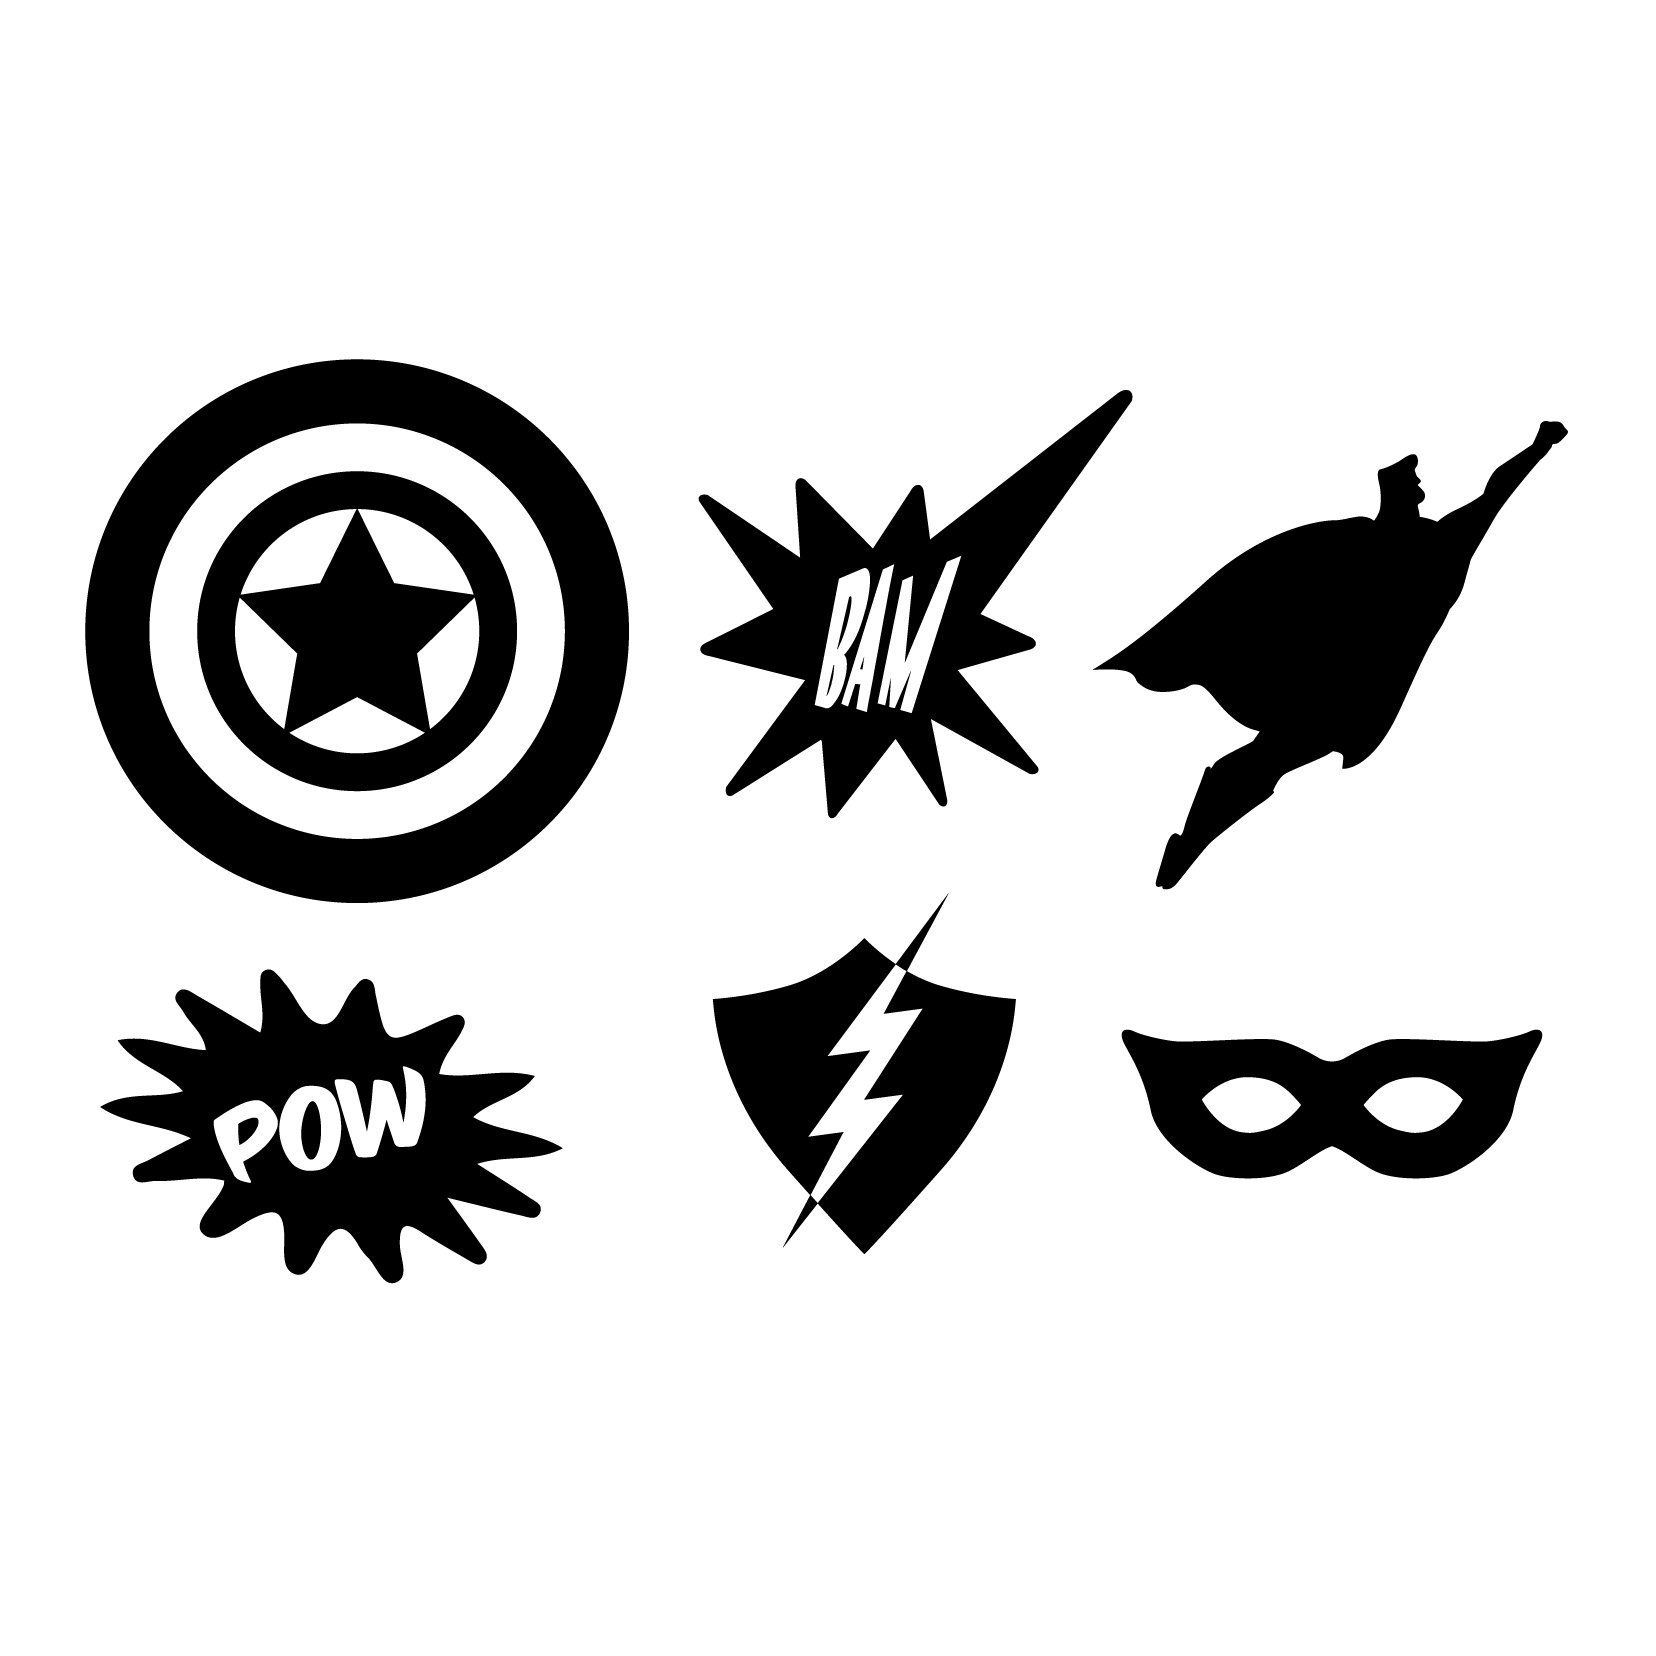 Superhero Icons - 5 sets, 30 icons - Vinyl Wall Art Decal for Homes, Offices, Kids Rooms, Nurseries, Schools, High Schools, Colleges, Universities, Interior Designers, Architects, Remodelers